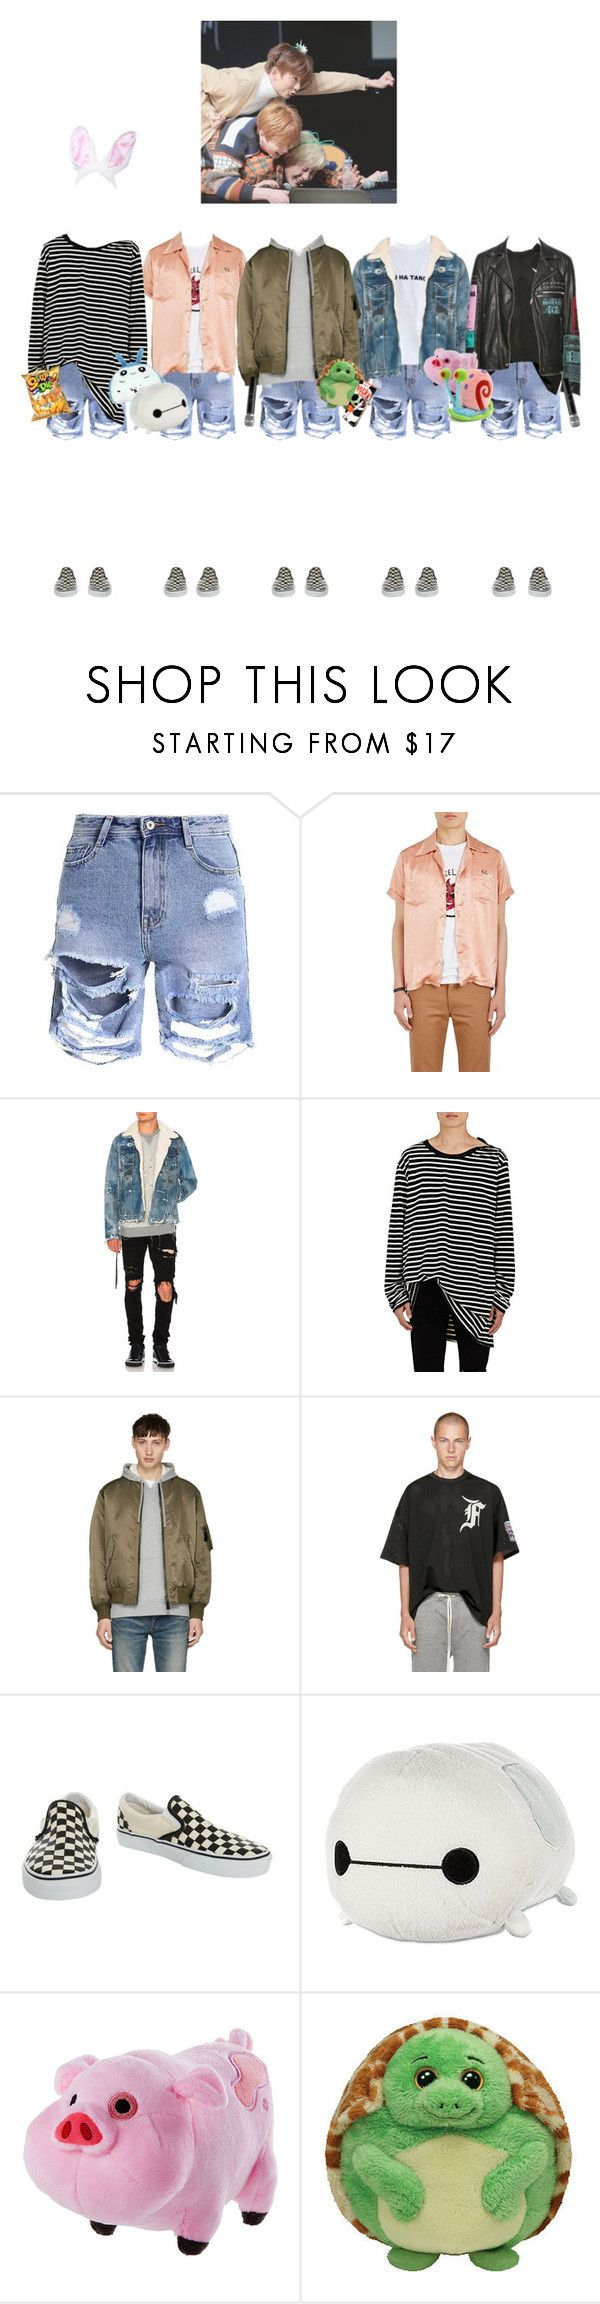 """""""X Weapon ✘ Fan signing at Incheon"""" by x-weapon ❤ liked on Polyvore featuring Visvim, AMIRI, Faith Connexion, Yves Salomon, Fear of God, Vans, INC International Concepts, Disney, Panda and men's fashion"""